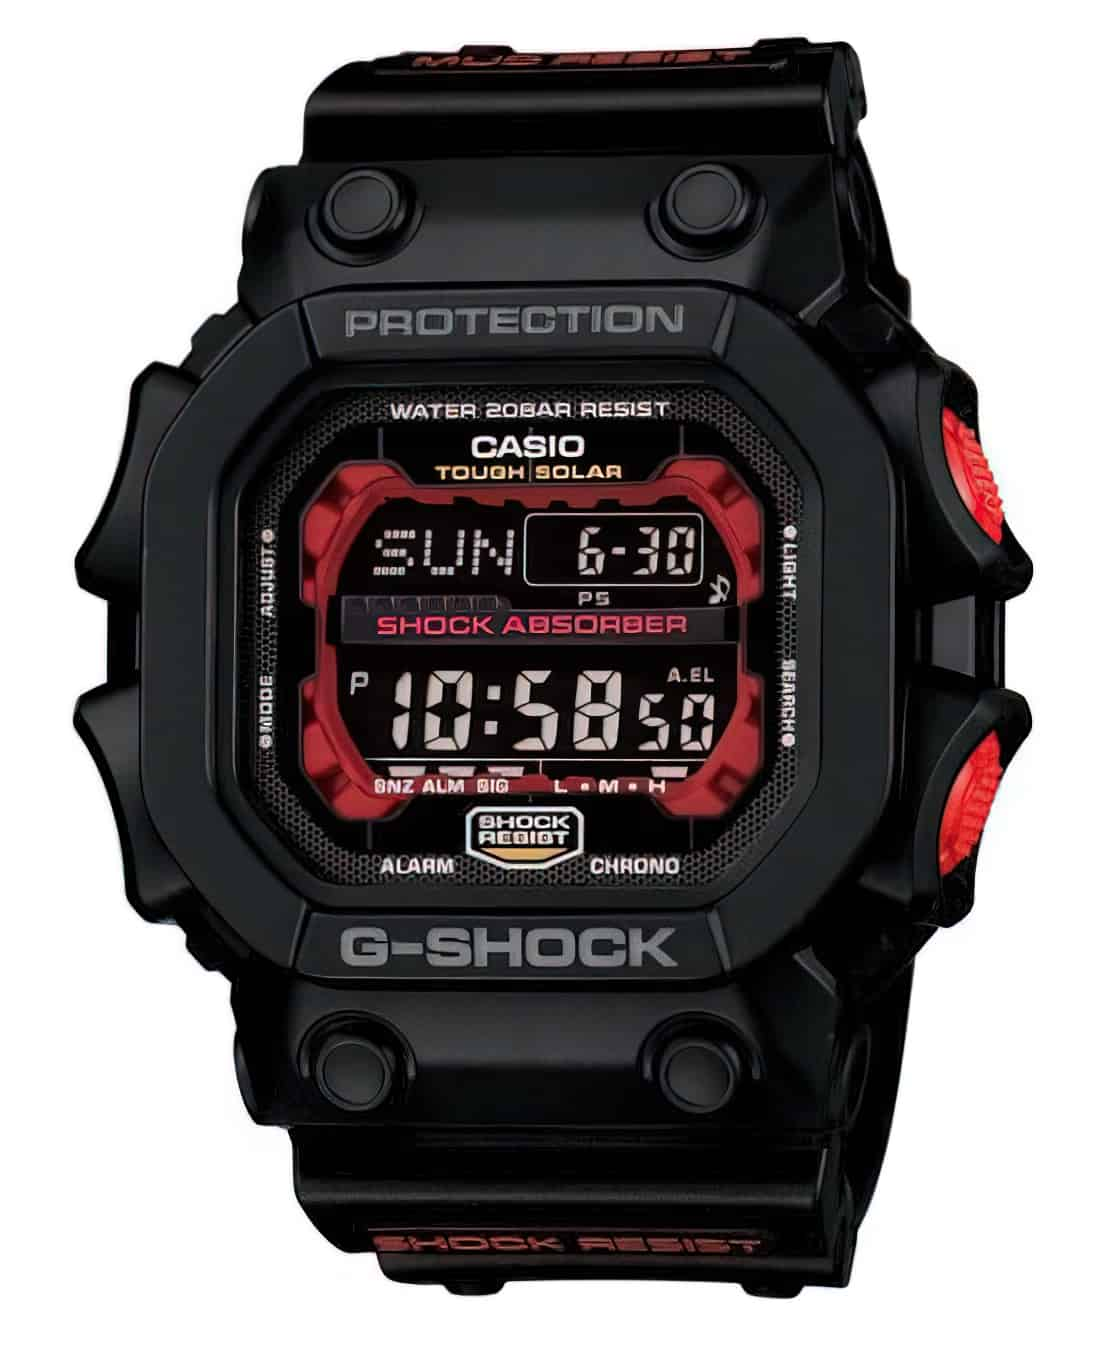 Casio G Shock GX56 e1280966656678 upscaled